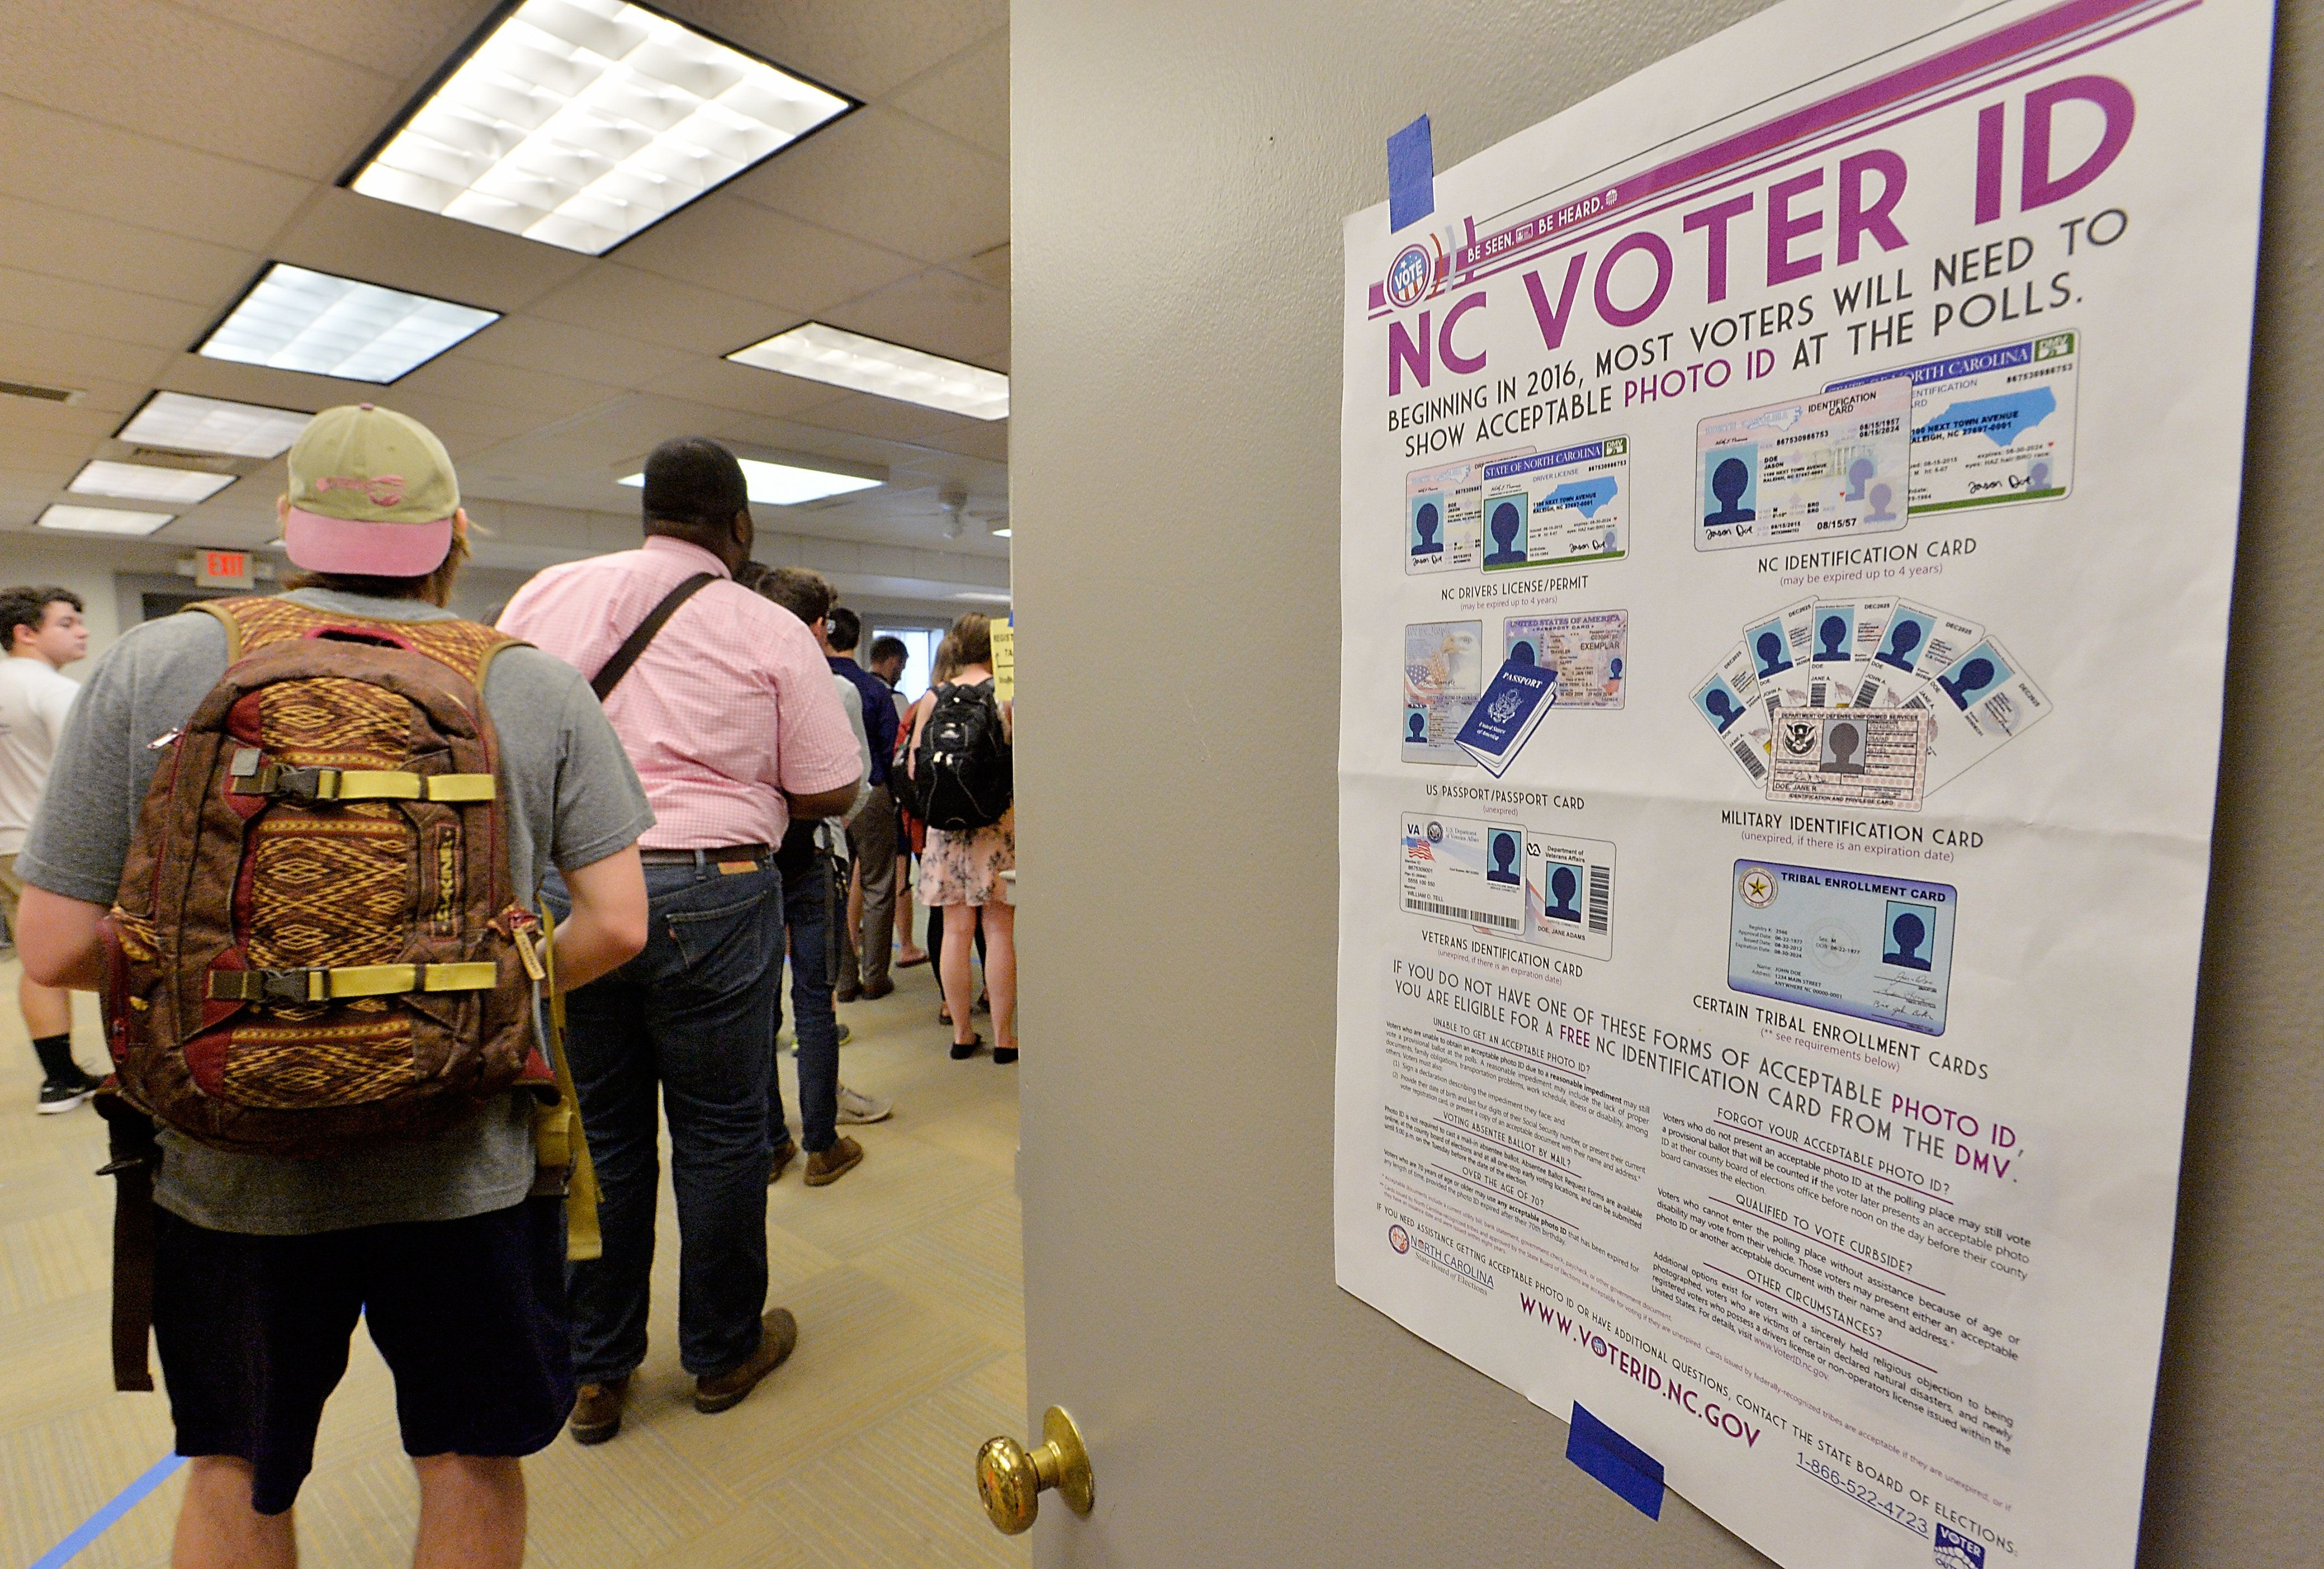 RALEIGH, NC - MARCH 15:  North Carolina State University students wait in line to vote in the primaries at Pullen Community Center on March 15, 2016 in Raleigh, North Carolina. The North Carolina primaries is the state's first use of the voter ID law, which excludes student ID cards. Wake County was among the highest use of provisional ballots, where those voters had home addresses on or near campuses. The Board of Elections will review voter's reasonable impediment form submitted with their provisional ballots to determine if their vote counts. The state's voter ID law is still being argued in federal court. (Photo by Sara D. Davis/Getty Images )